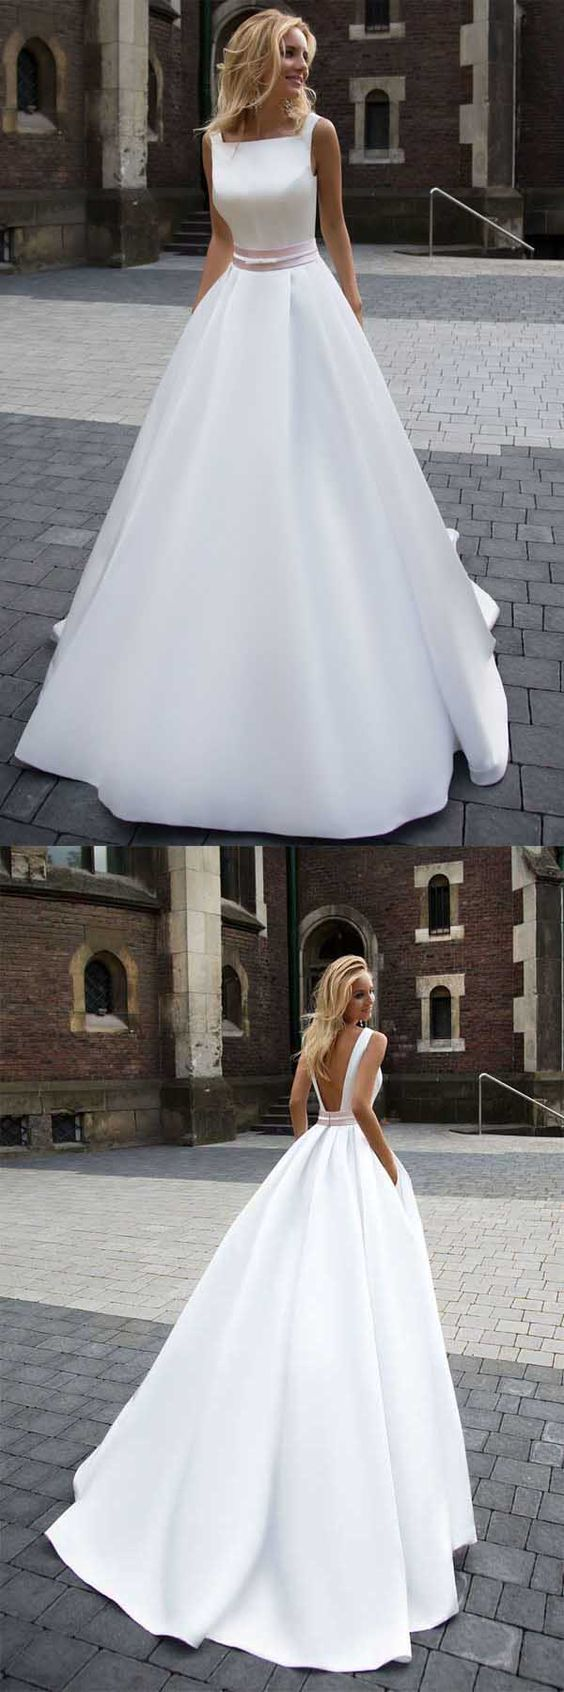 Princess Simple A-line Satin Ivory Wedding Dresses